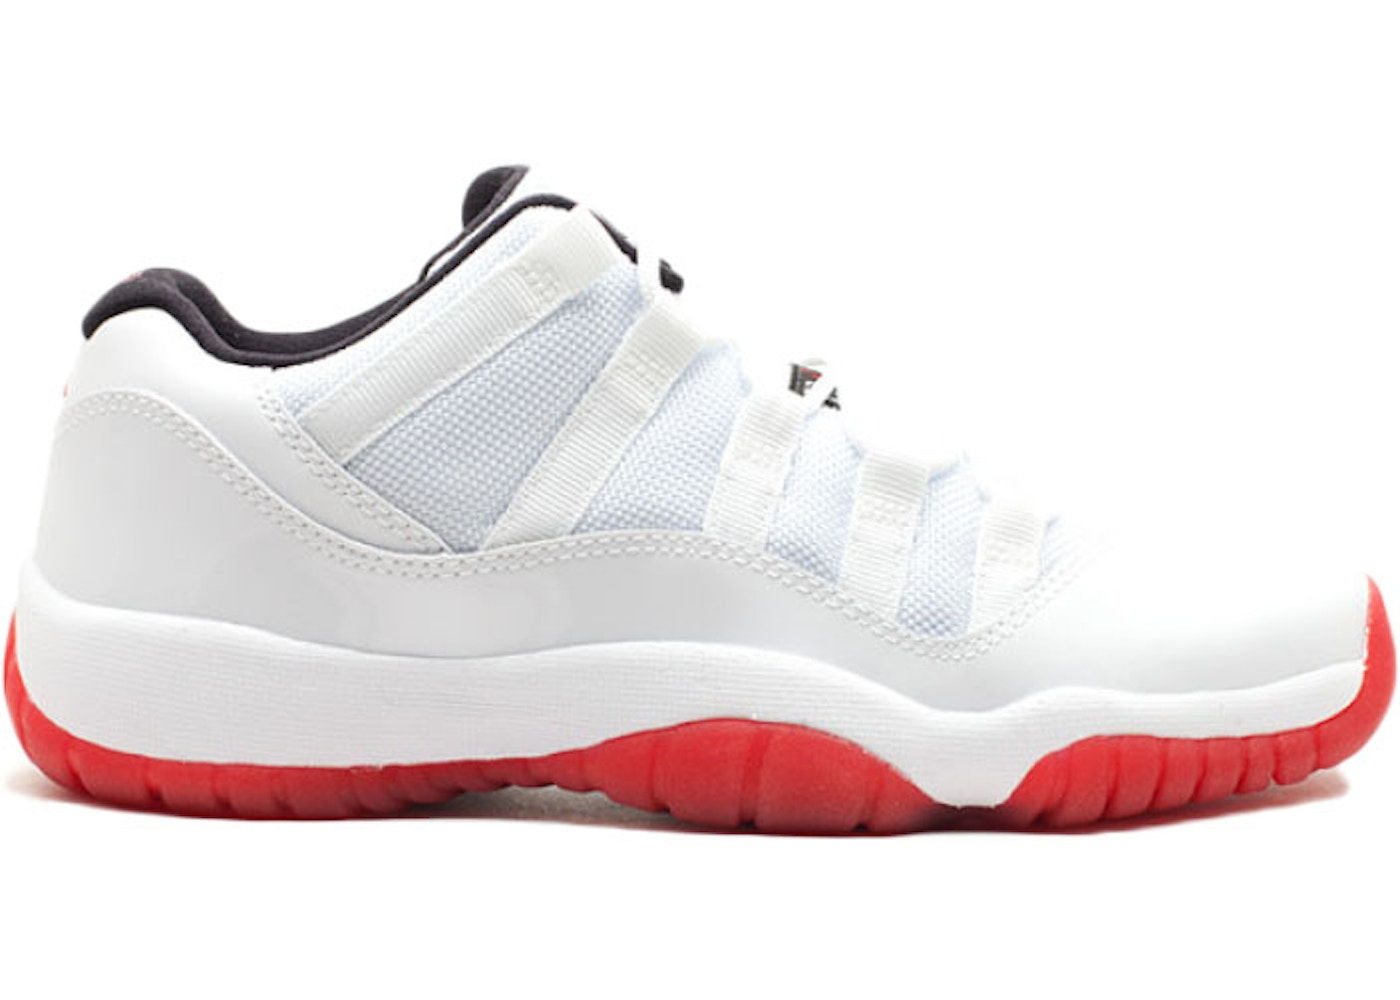 08ef5b8edc8 Sell. or Ask. Size: 6.5Y. View All Bids. Jordan 11 Retro Low White Varsity  Red ...